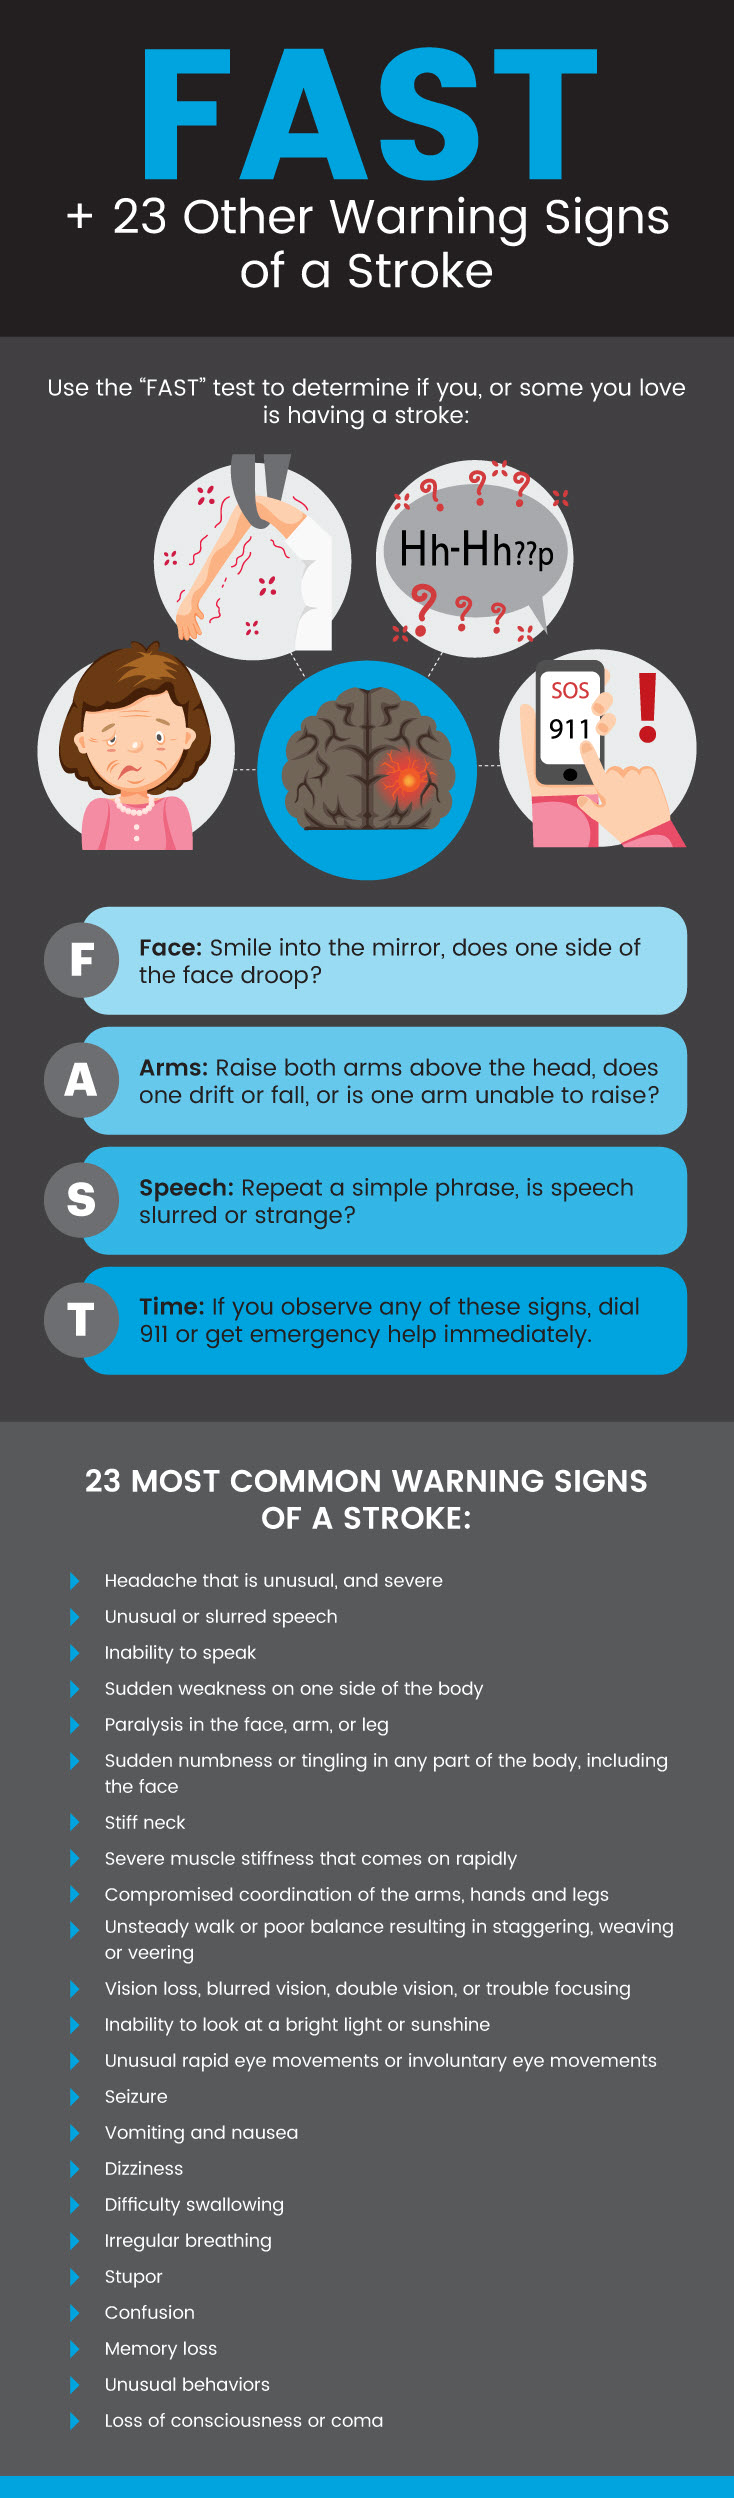 FAST + 23 other warning signs of a stroke - MKexpress.net